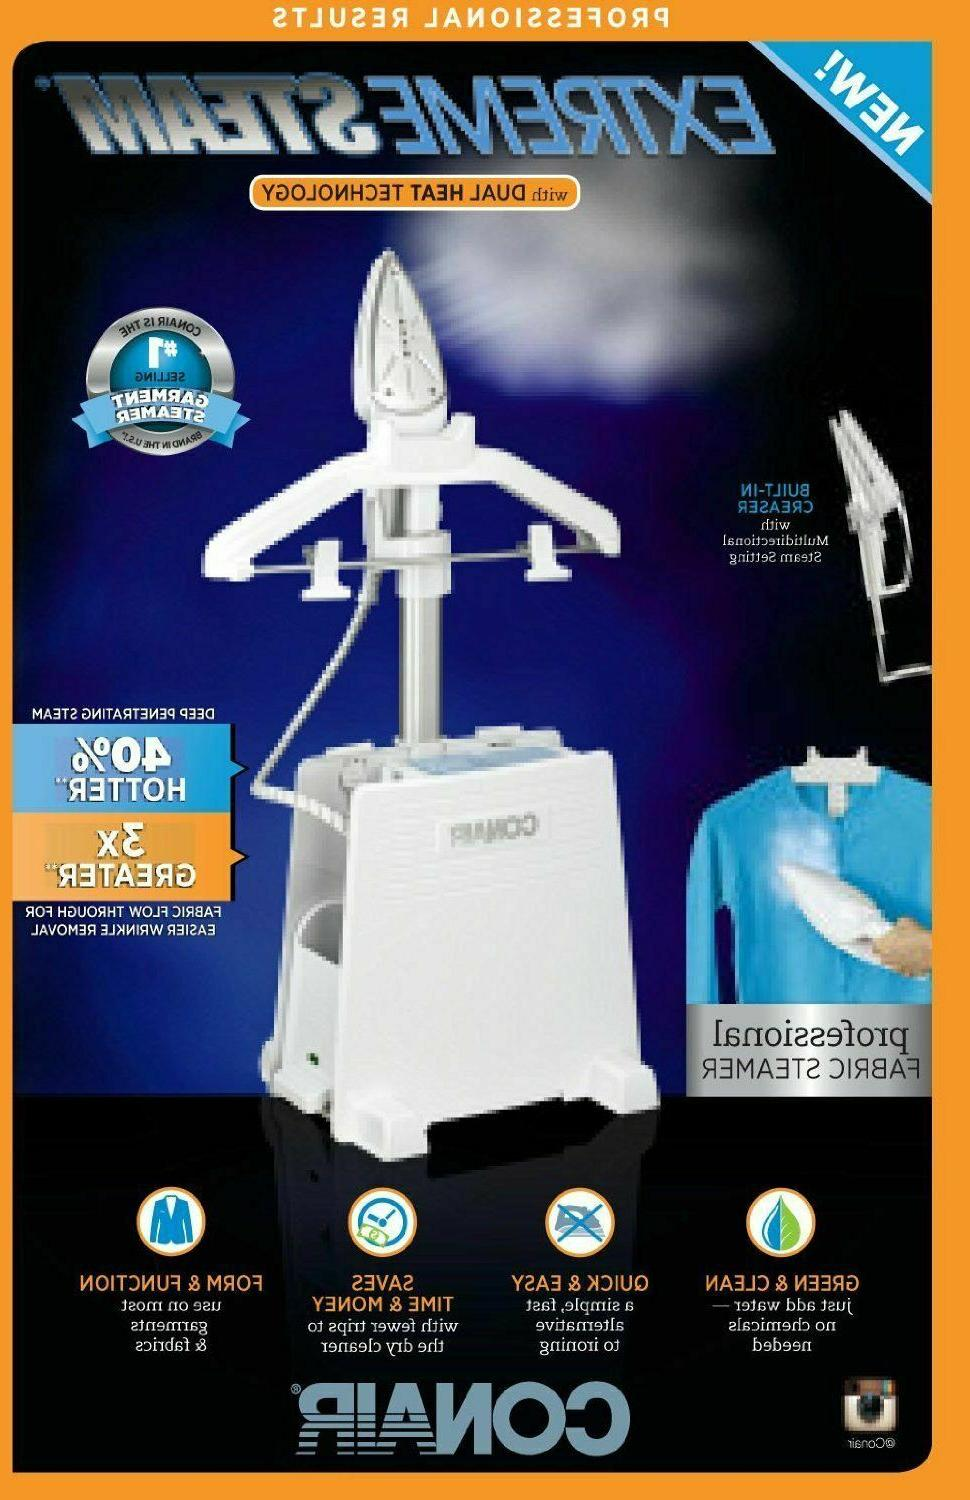 extreme steam deluxe steamer perfect for large